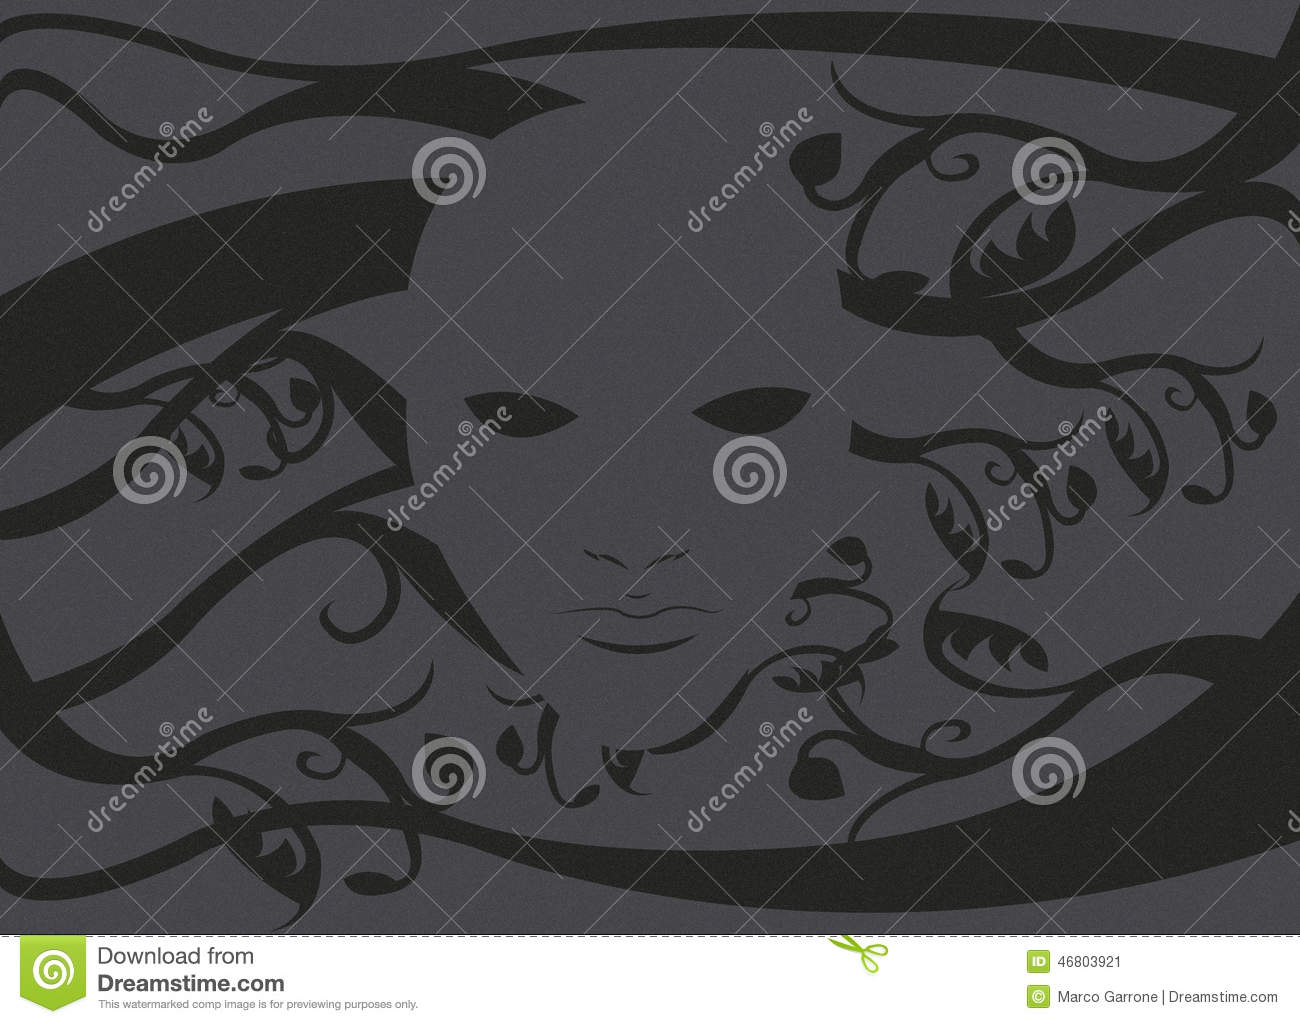 Ghost Mask Without A Face 2 Stock Illustration - Image: 46803921